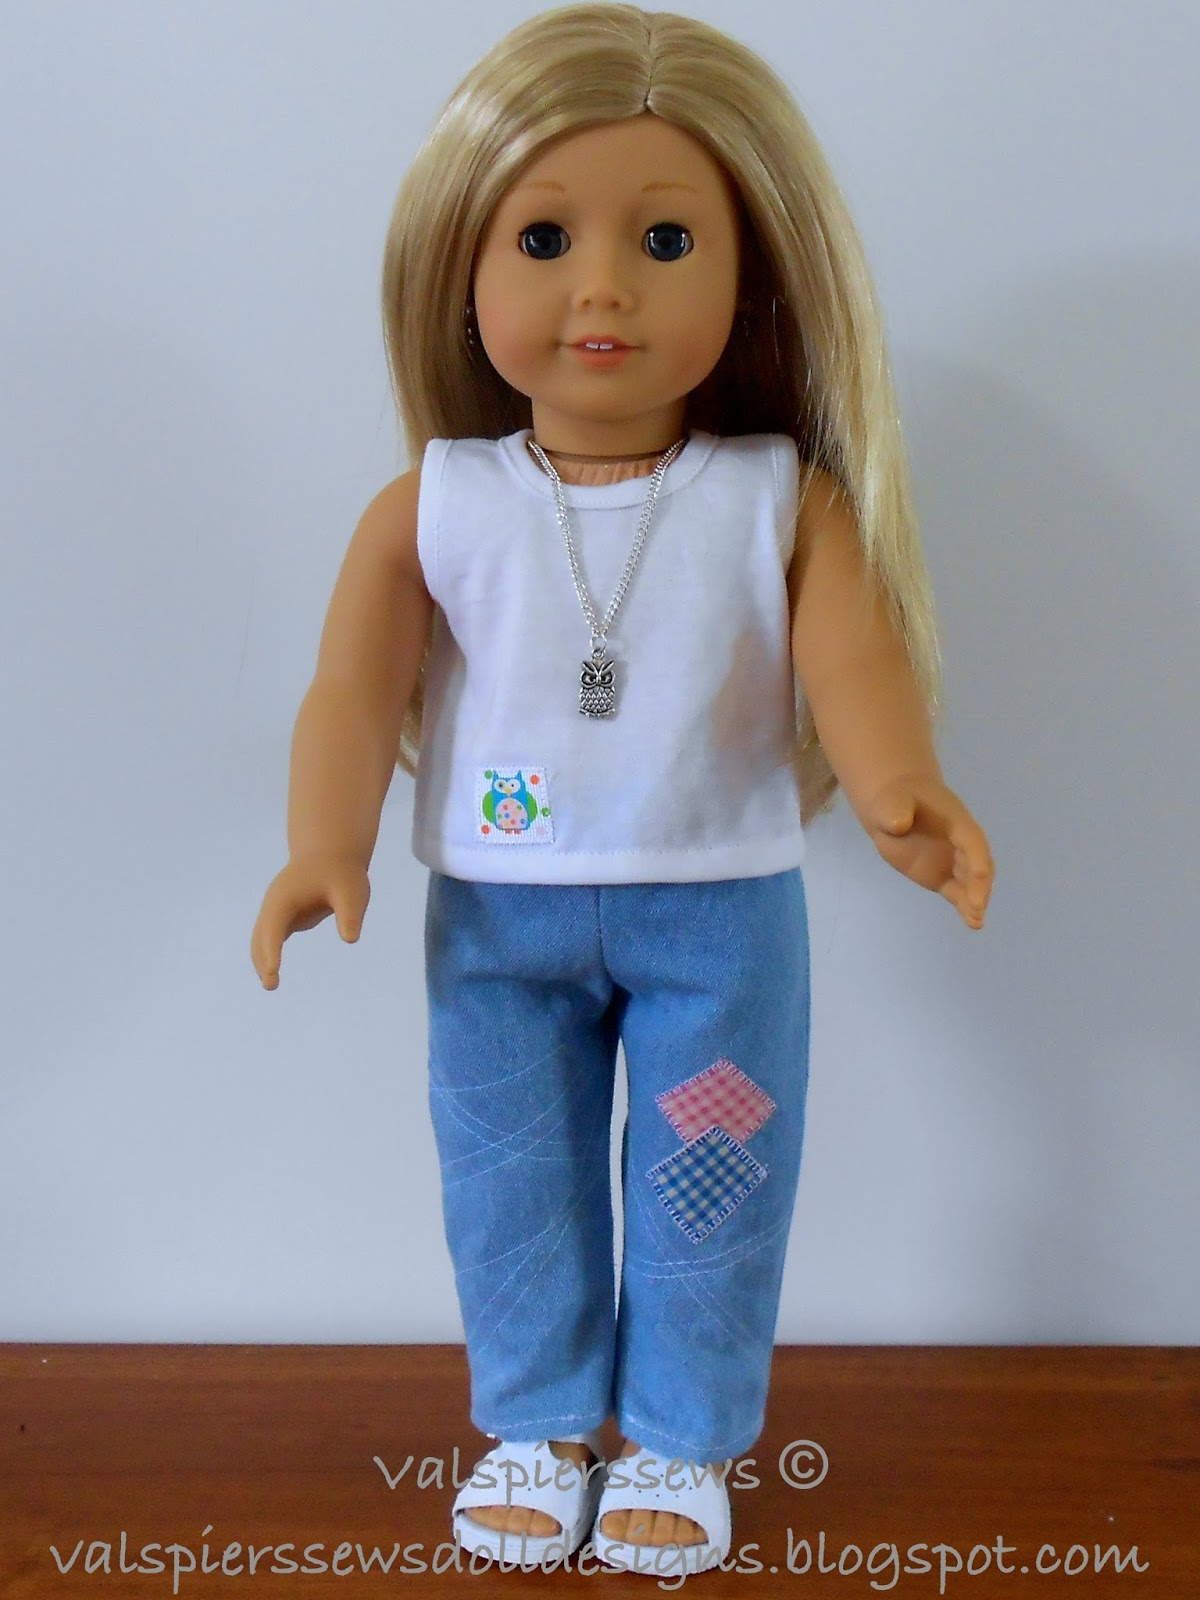 Doll Clothes Patterns By Valspierssews Review Of American: Doll Clothes Patterns By Valspierssews: How To Sew Doll